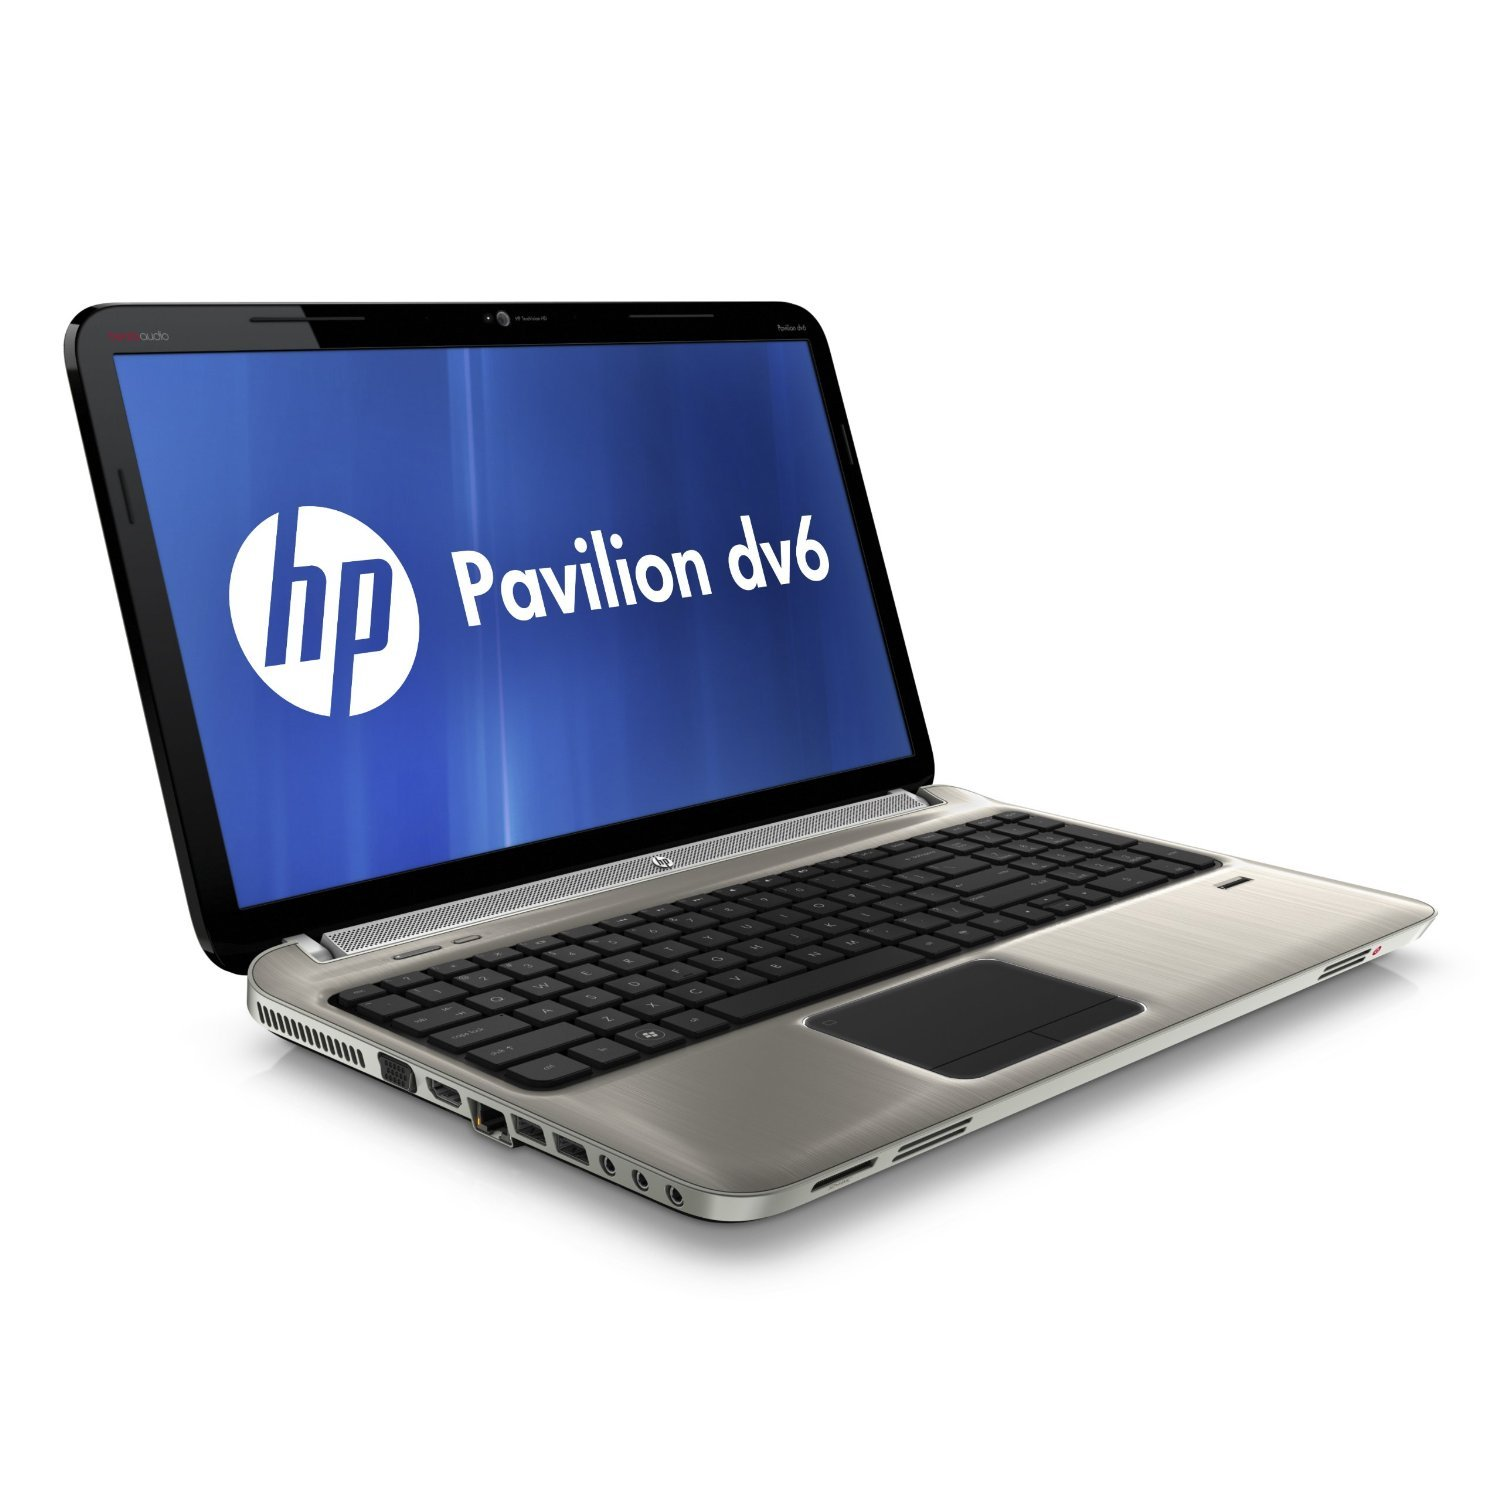 HP Pavilion dv6-6102sa Laptop PC (AMD Quad-Core A6-3410MX 1.6 GHz Up to 2.3  GHz in Boost Mode, RAM 4GB, HDD 750GB, Windows 7 Home Premium) - Steel  Grey: ...